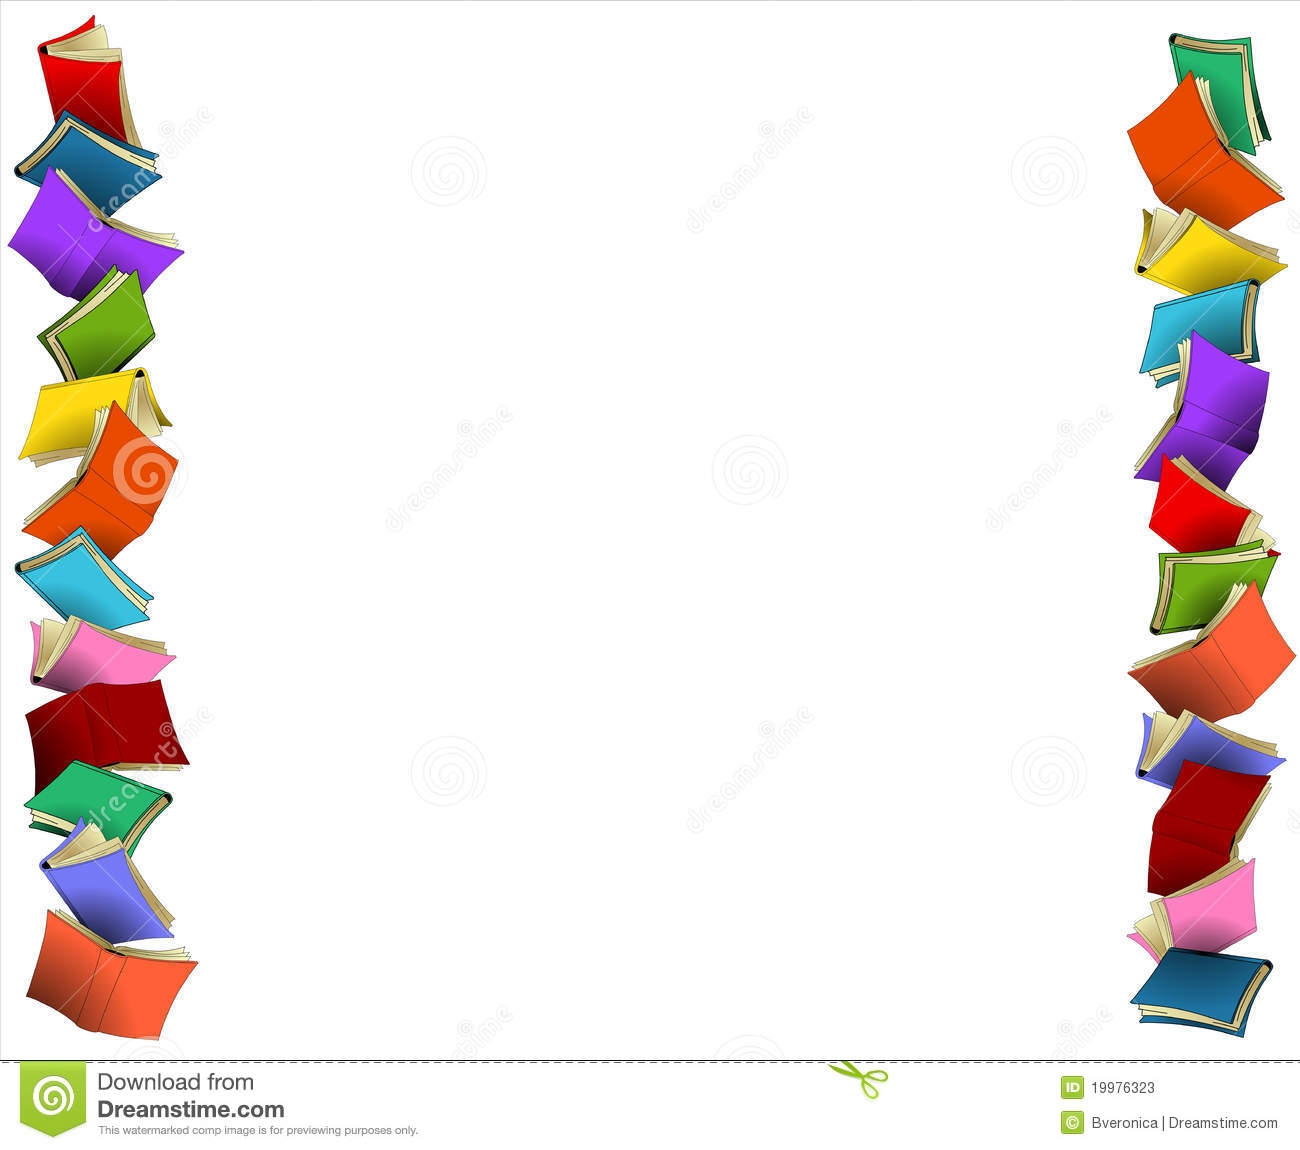 Clip art intended for. Books clipart borders